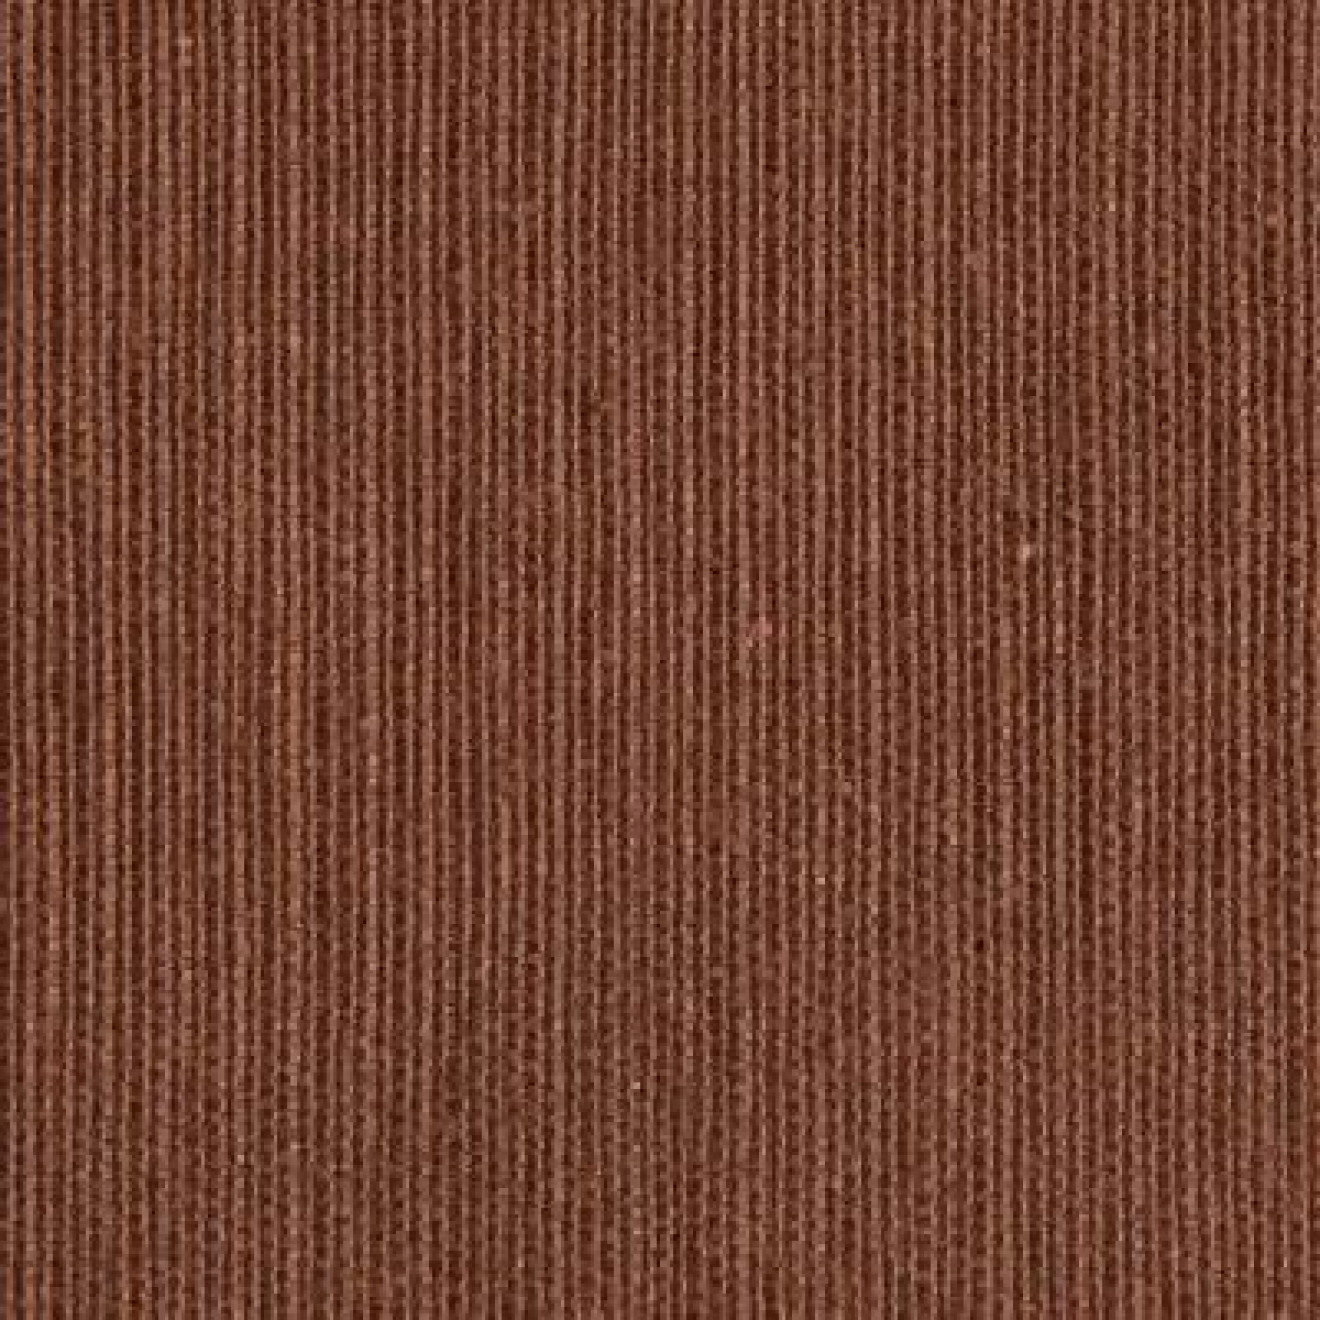 Rolle - Acrylstoff Loneta Color 110